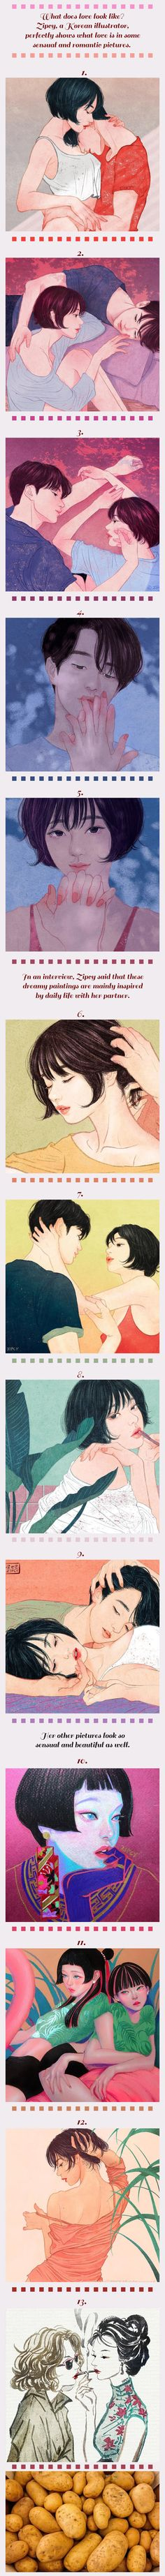 Korean Artist Depicts The Sensual Side Of Love In Gorgeous Illustrations